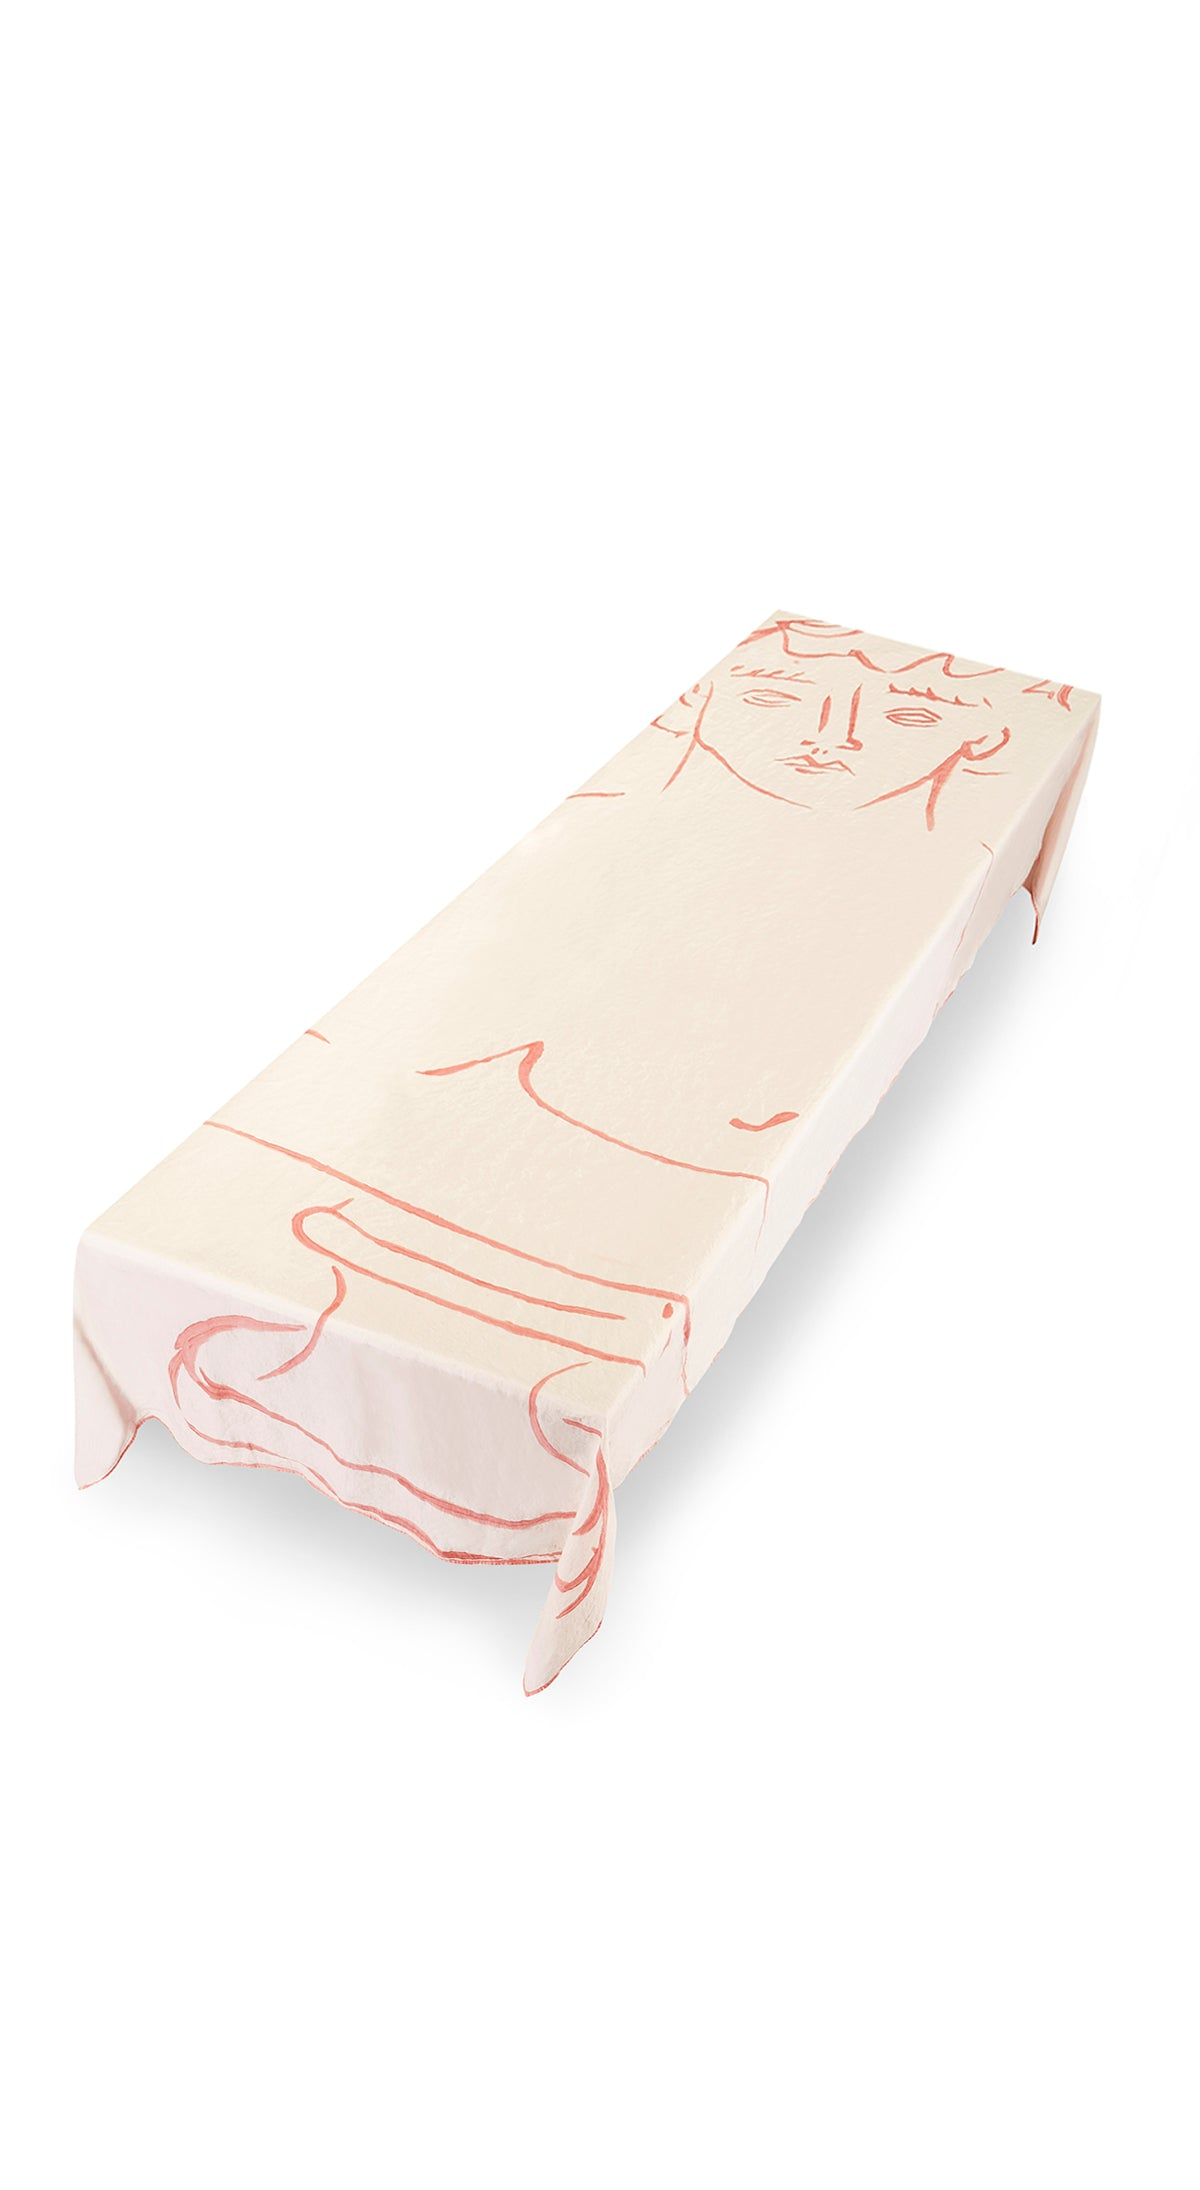 'Antinous II' S&B x Luke Edward Hall Linen Tablecloth